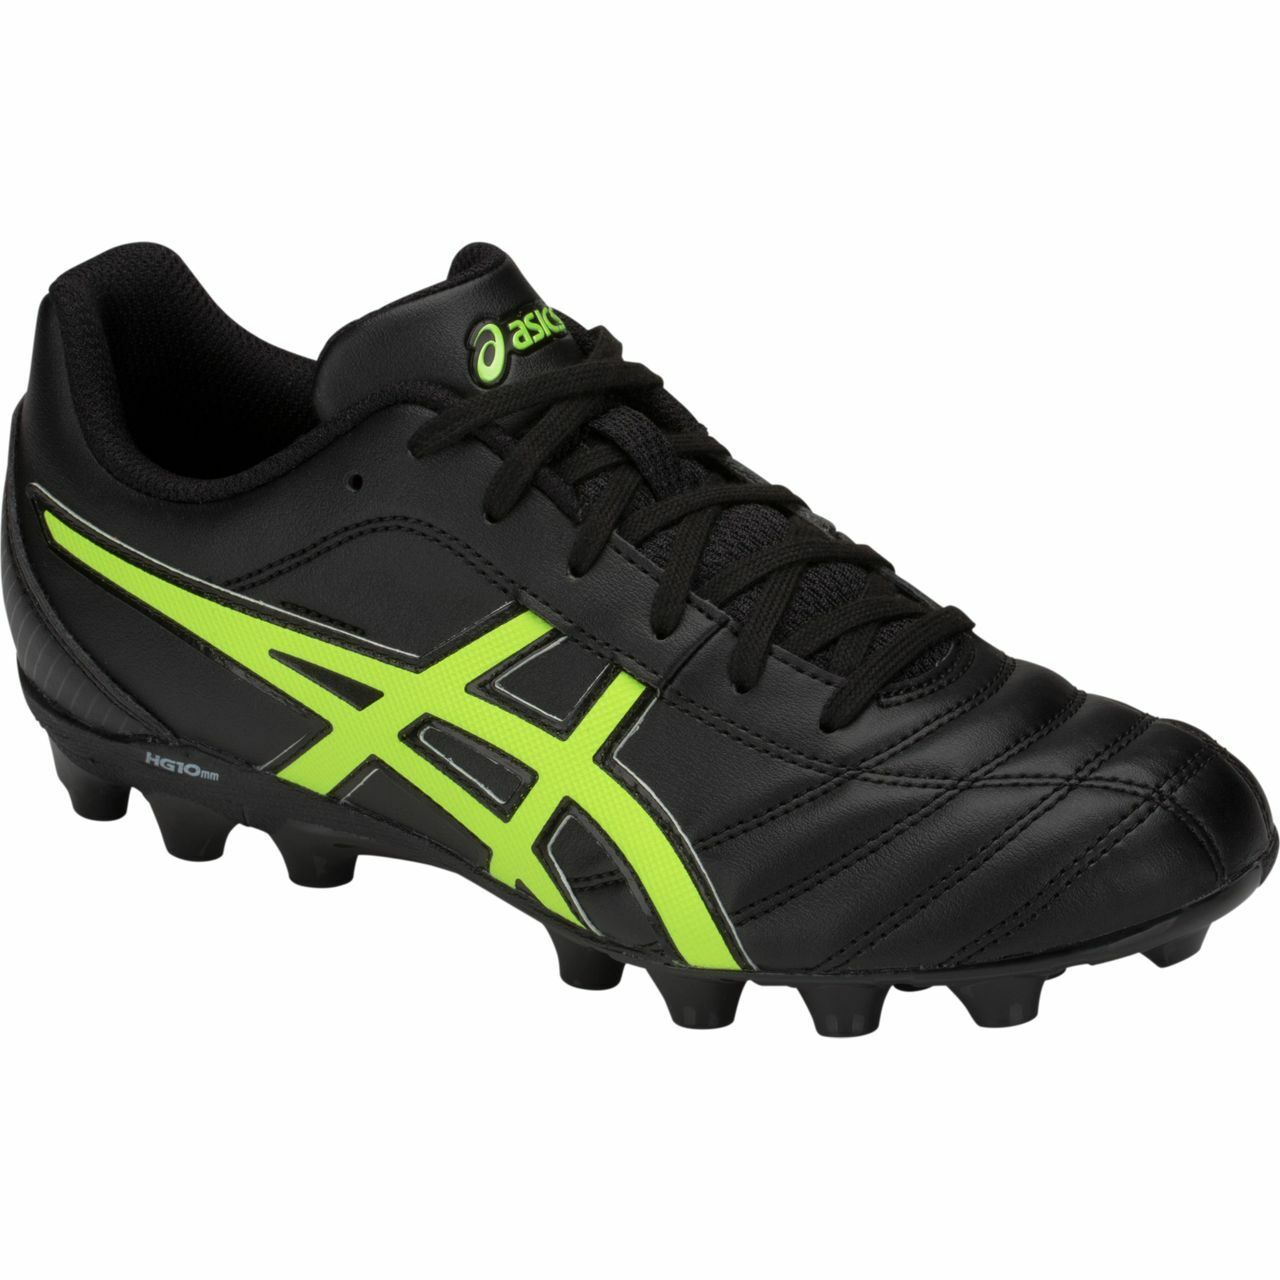 BARGAIN    Asics Lethal Flash IT GS bambini Footbtutti stivali 905